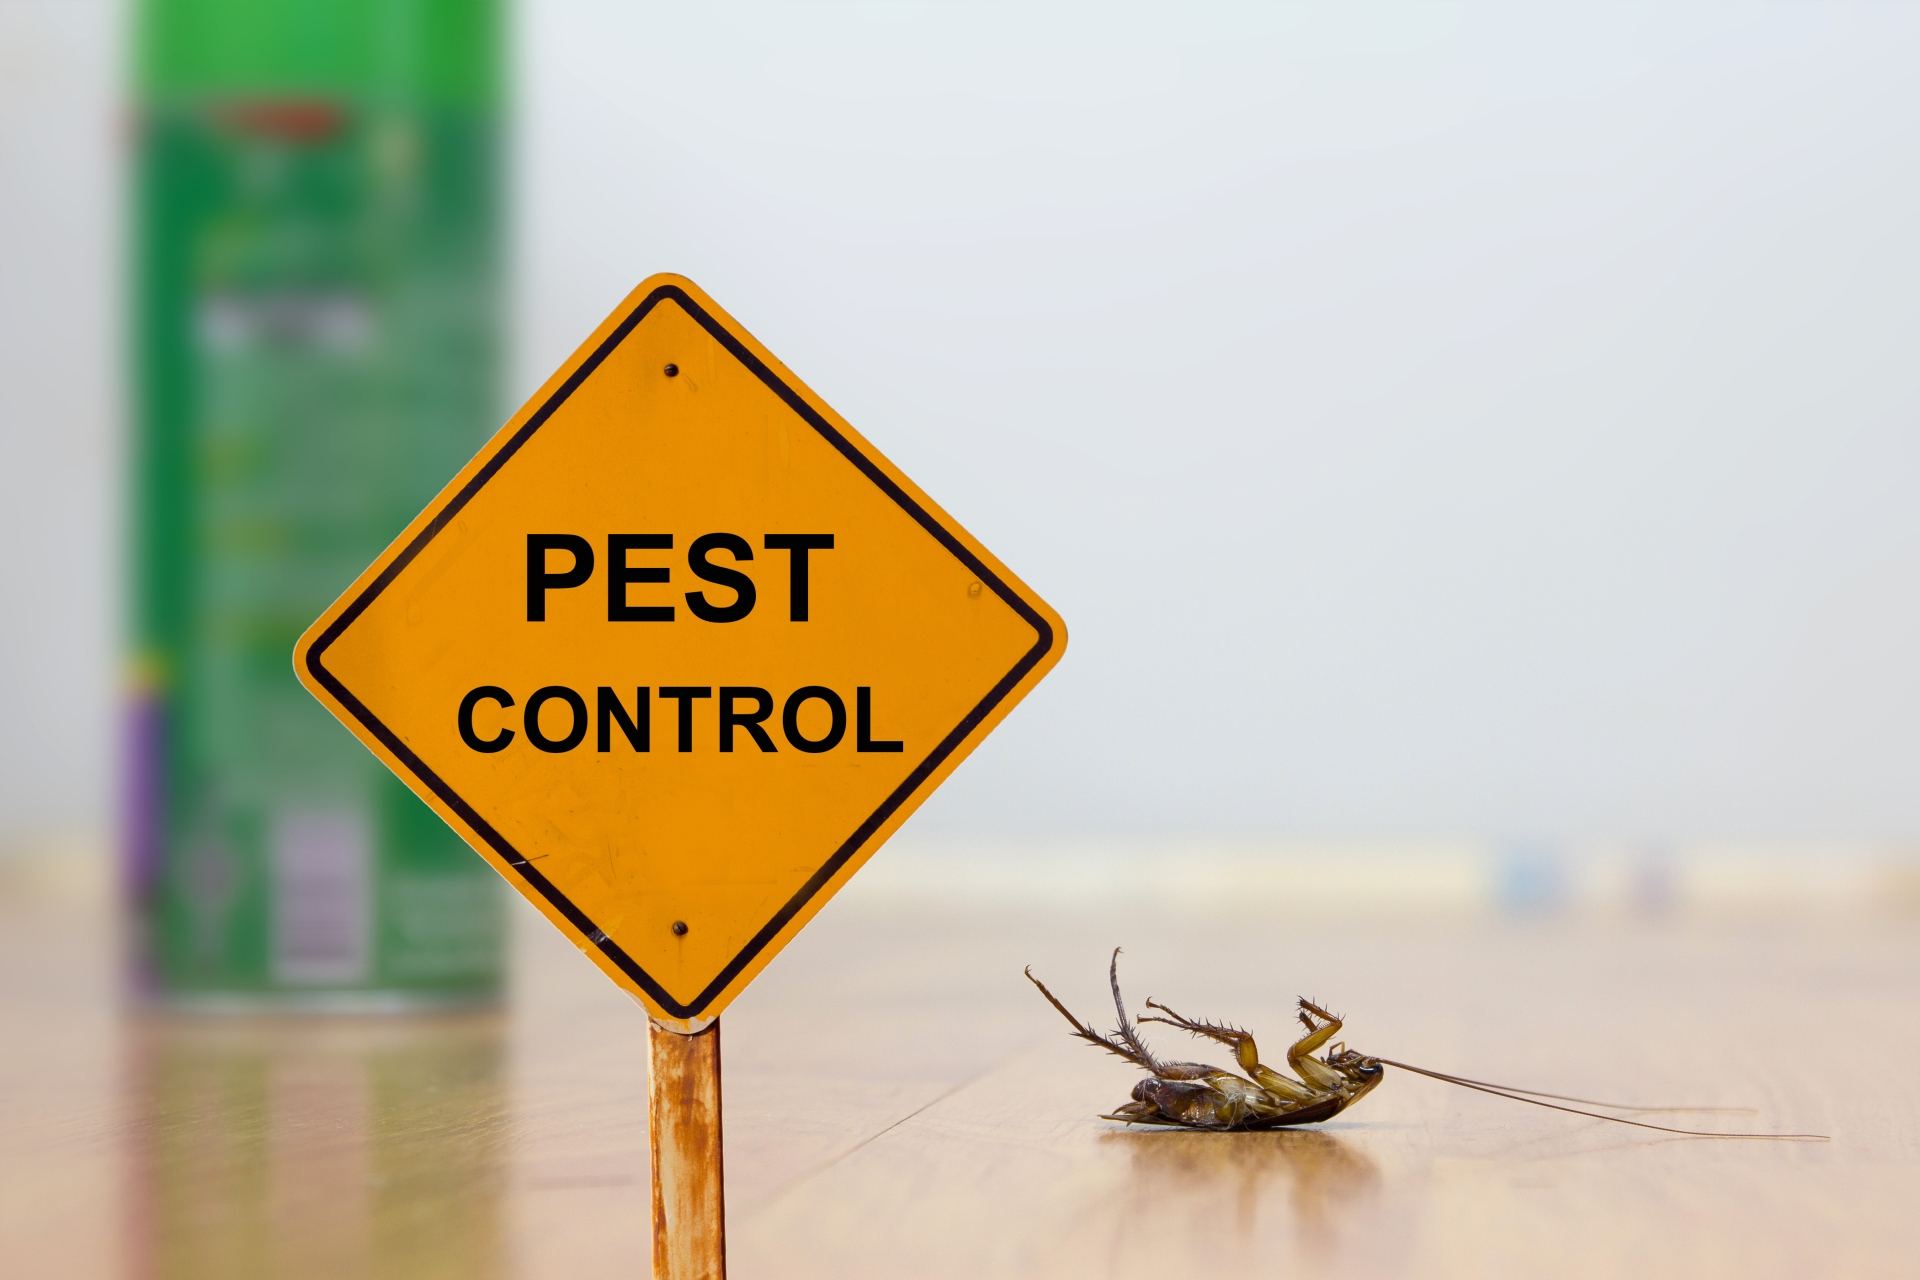 24 Hour Pest Control, Pest Control in Broxbourne, EN10. Call Now 020 8166 9746